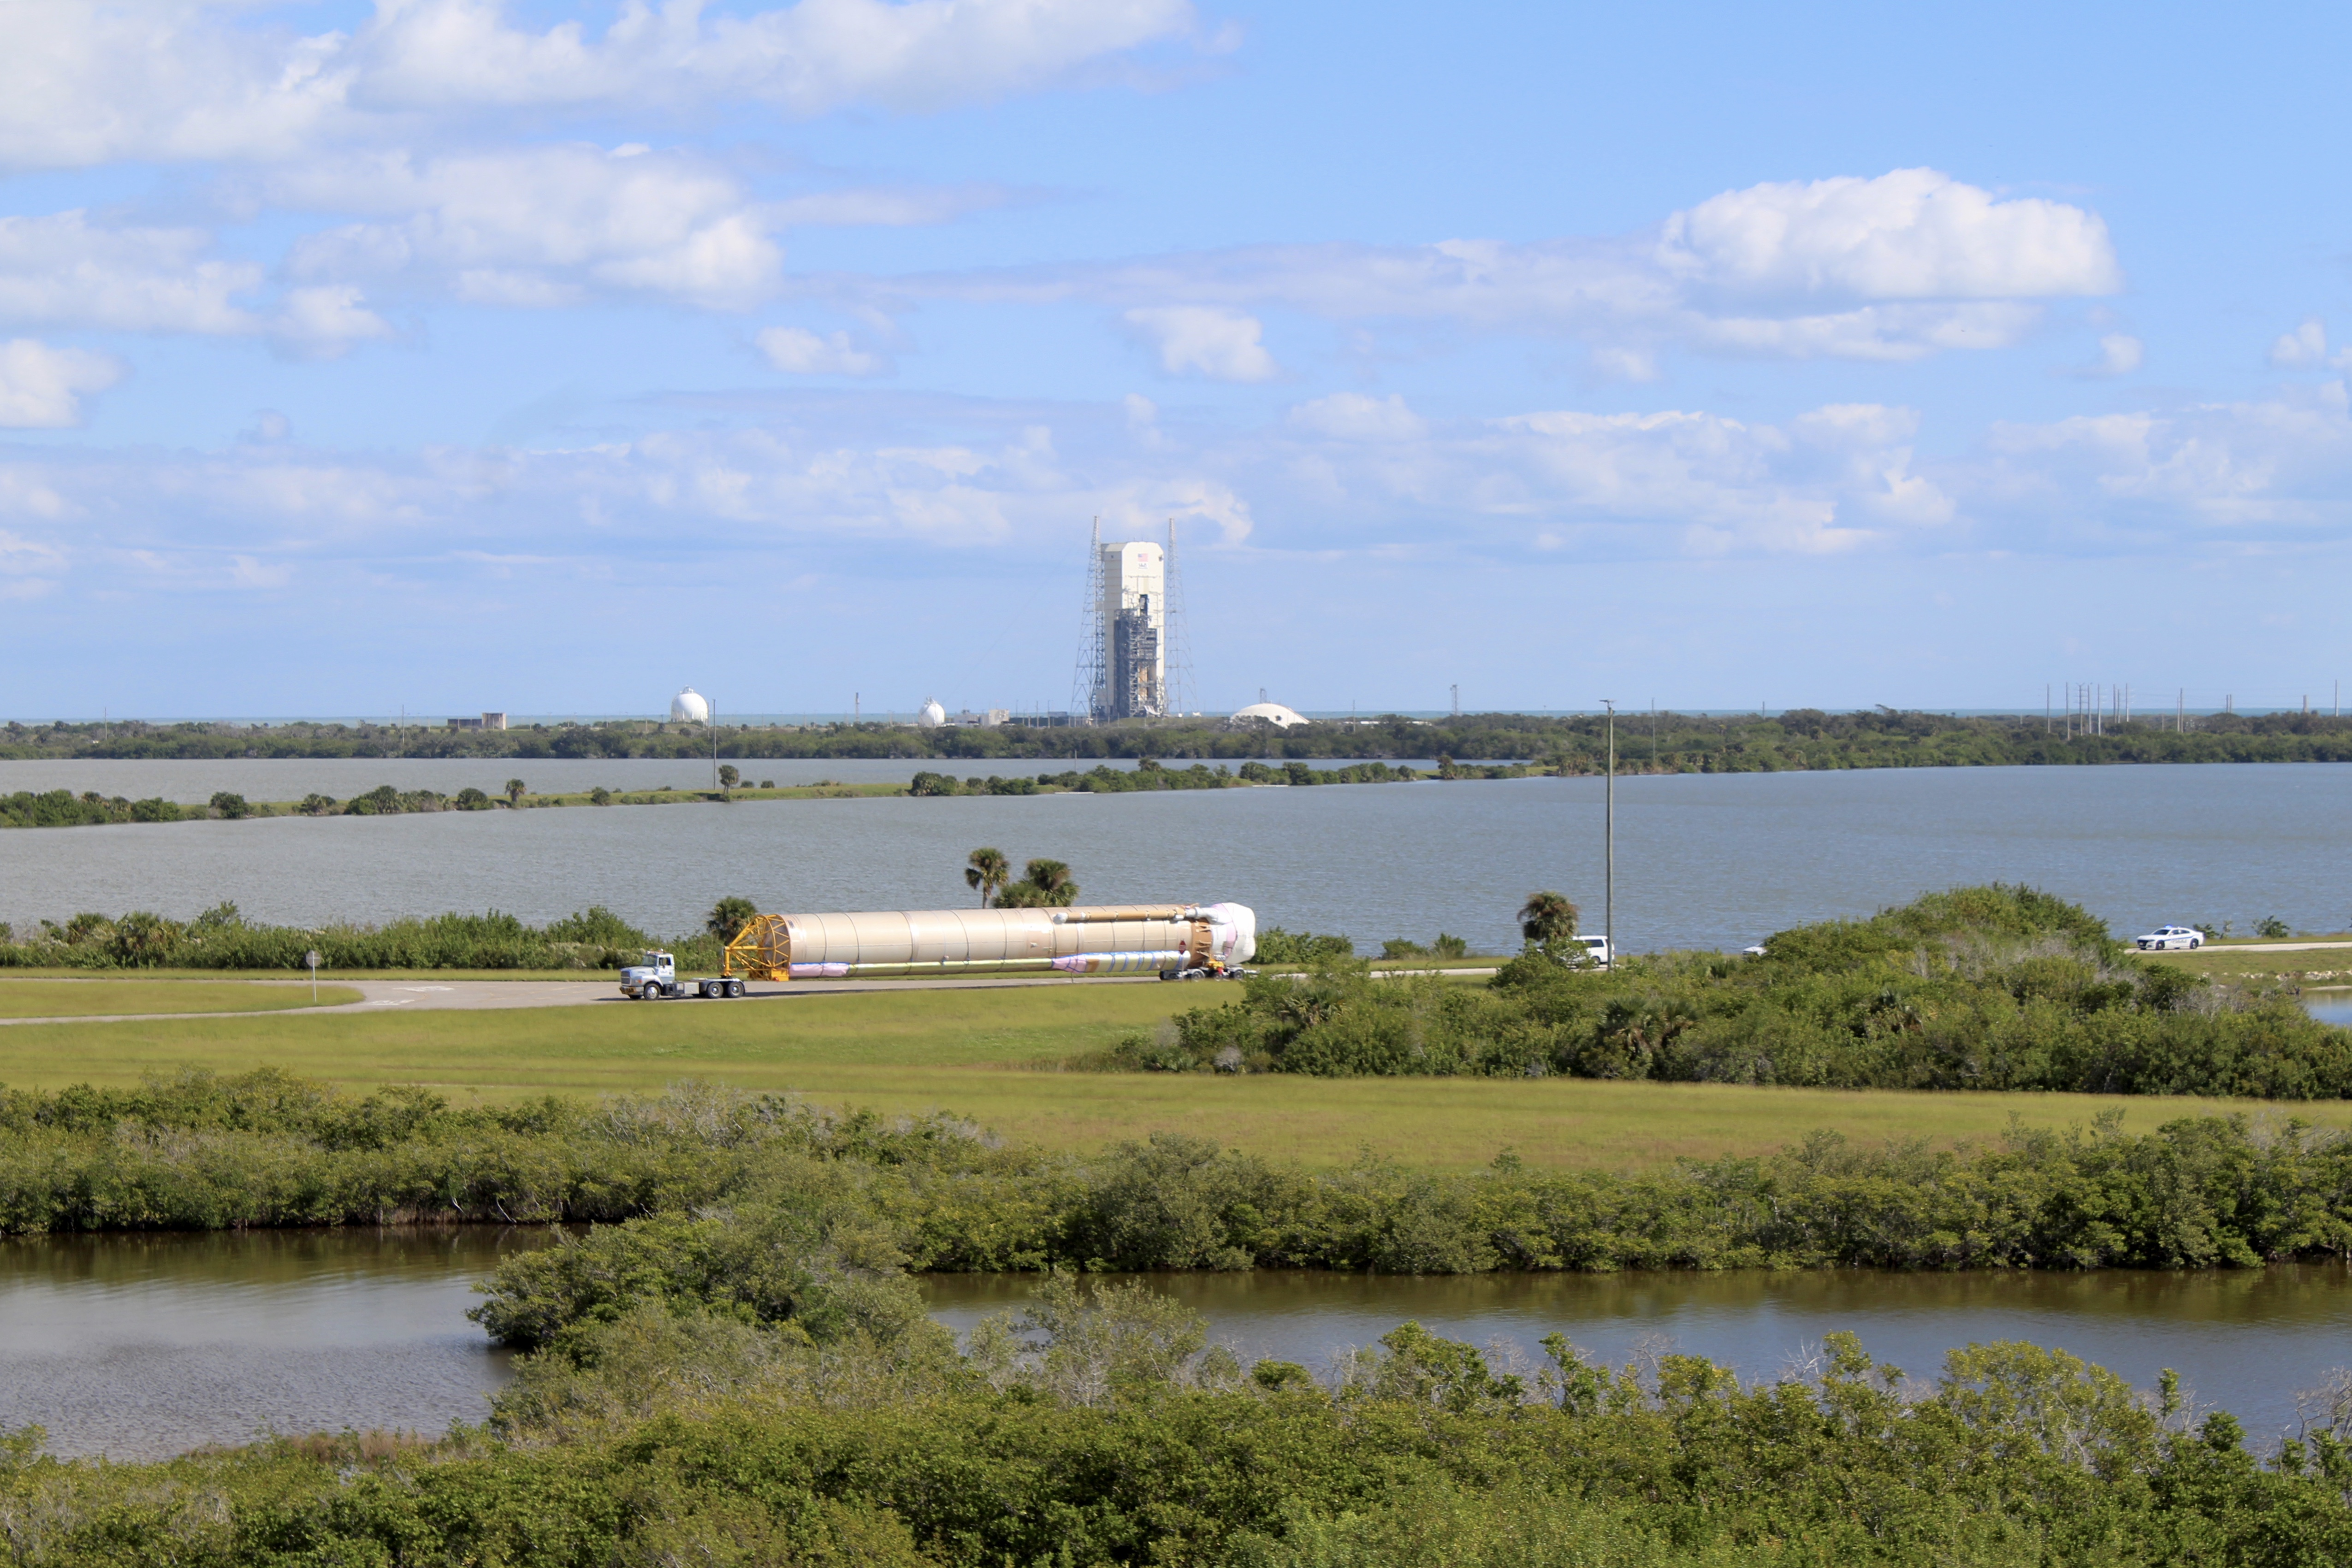 The Atlas V first stage is transported along the ITL Causeway. Photo by United Launch Alliance